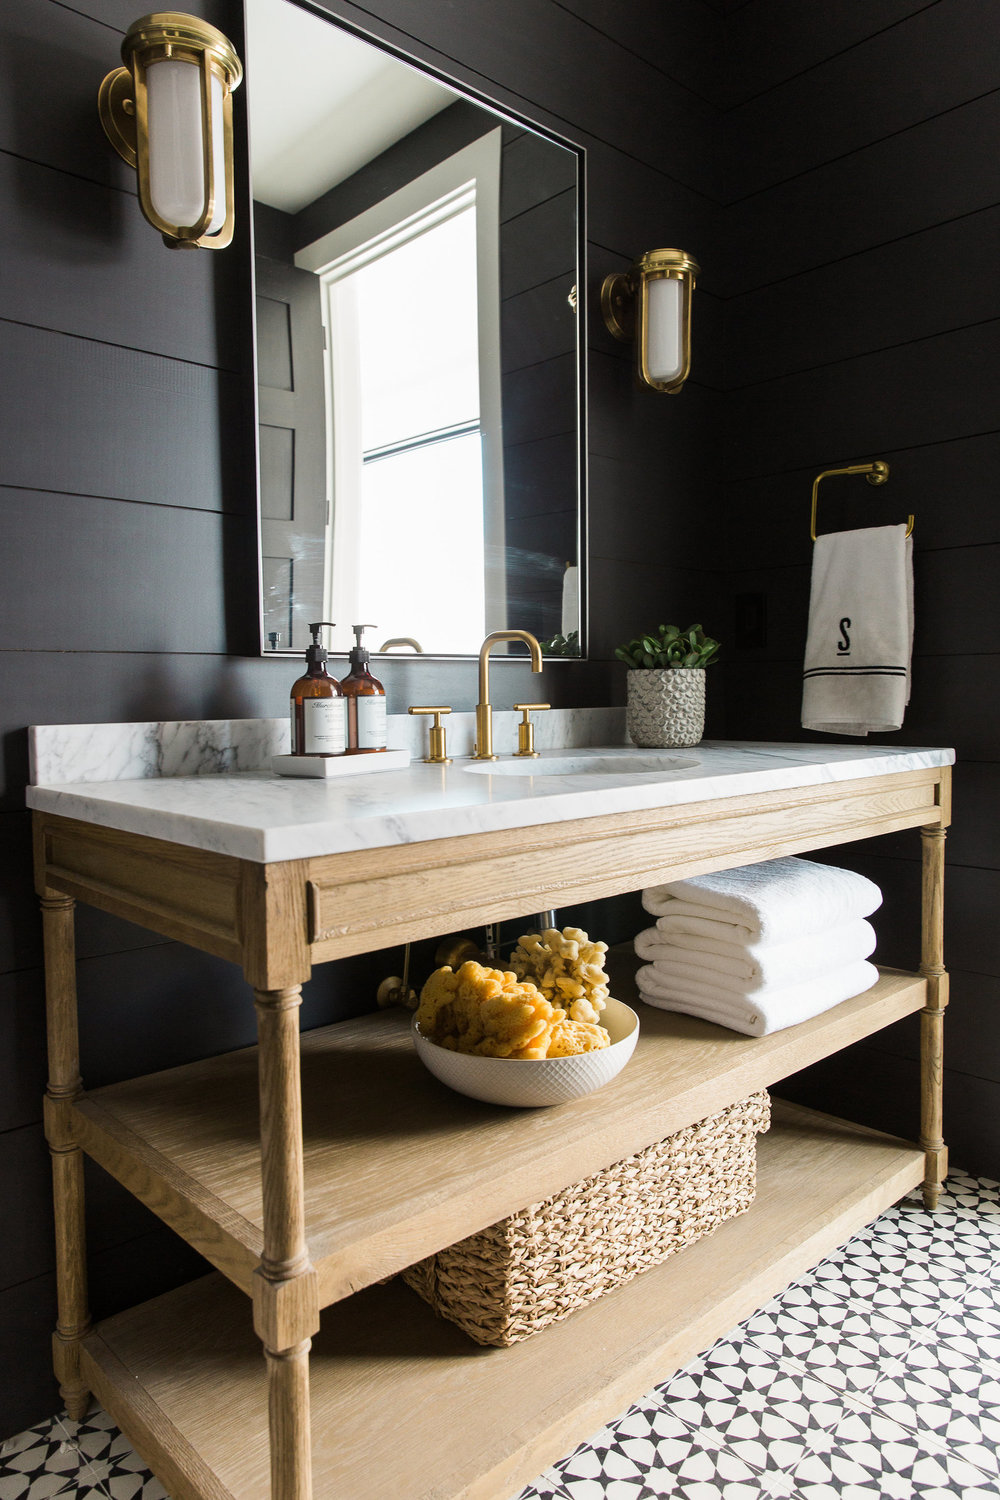 Black+shiplap+walls,+cement+tile+and+wood+vanity+||+Studio+McGee.jpg